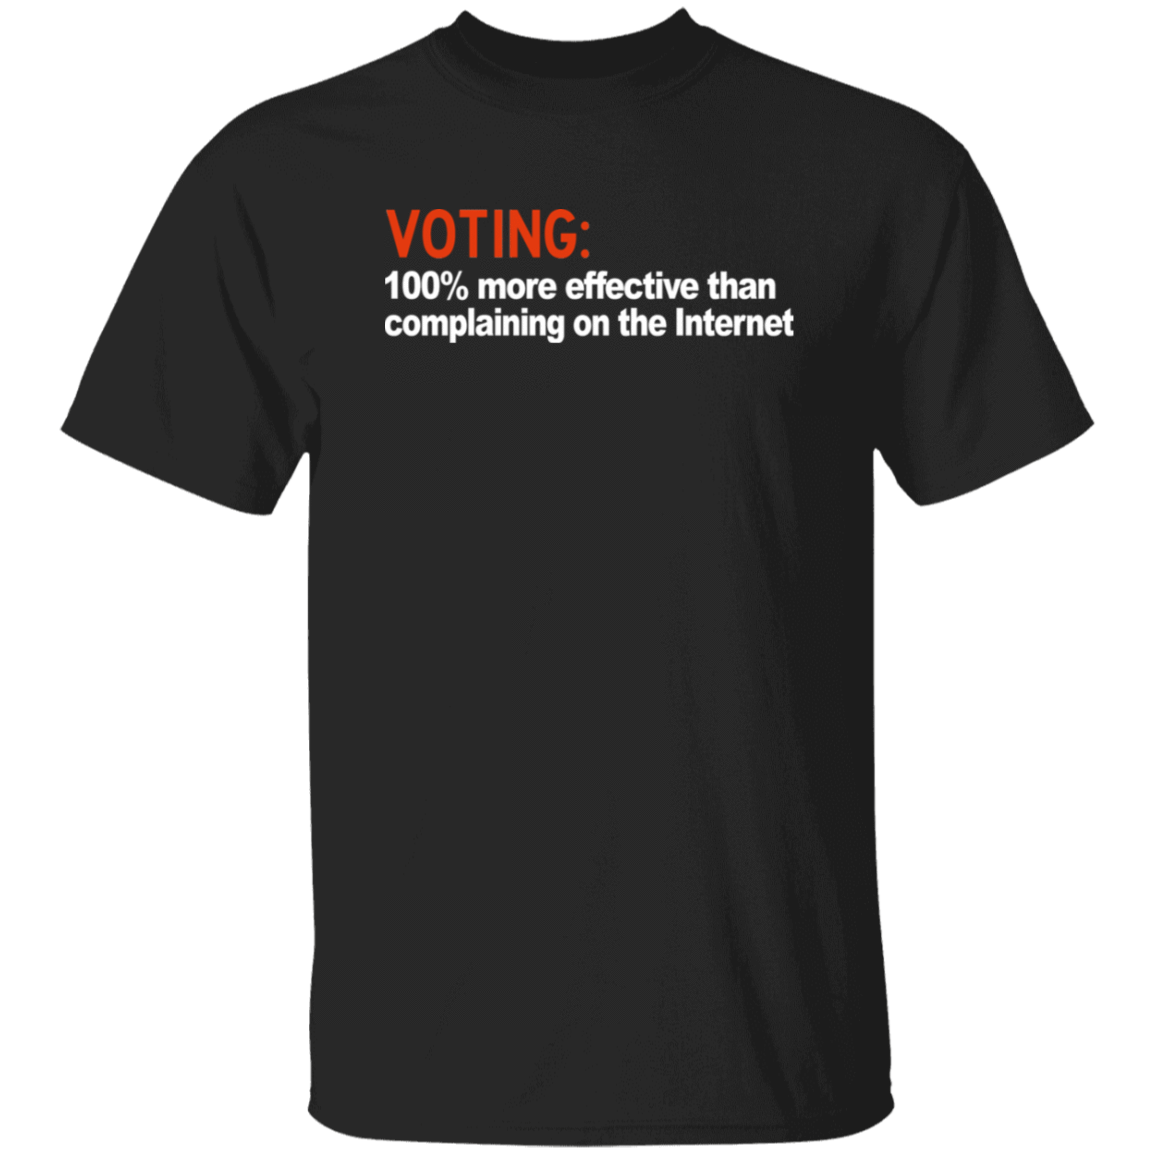 Voting 100% More Effective Than Complaining On The Internet T-Shirts, Hoodies, Tank 1049-9953-80434621-48144 - Tee Ript